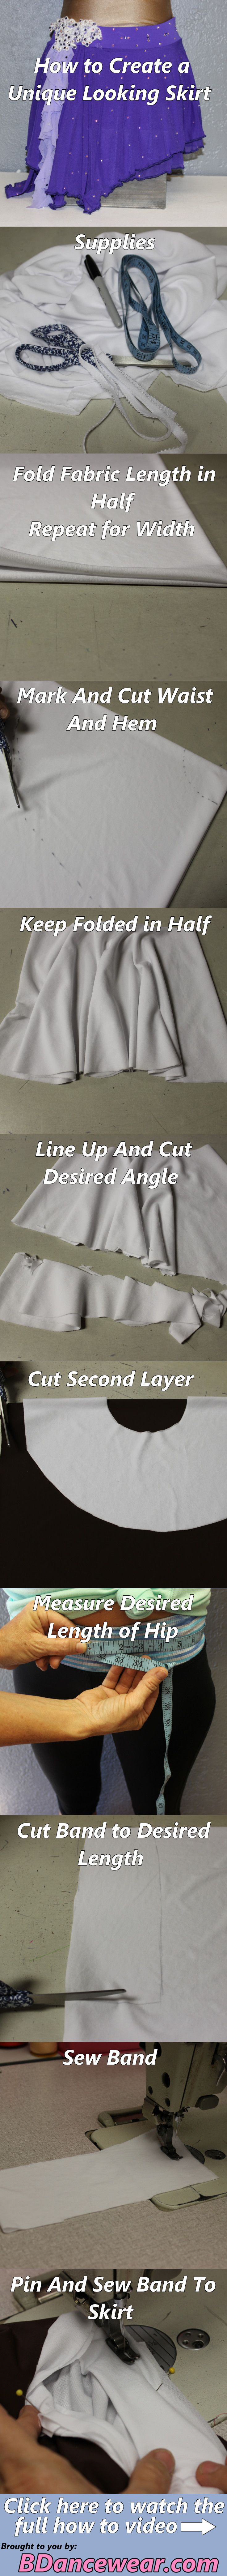 How To Create A Unique Looking Skirt DIY